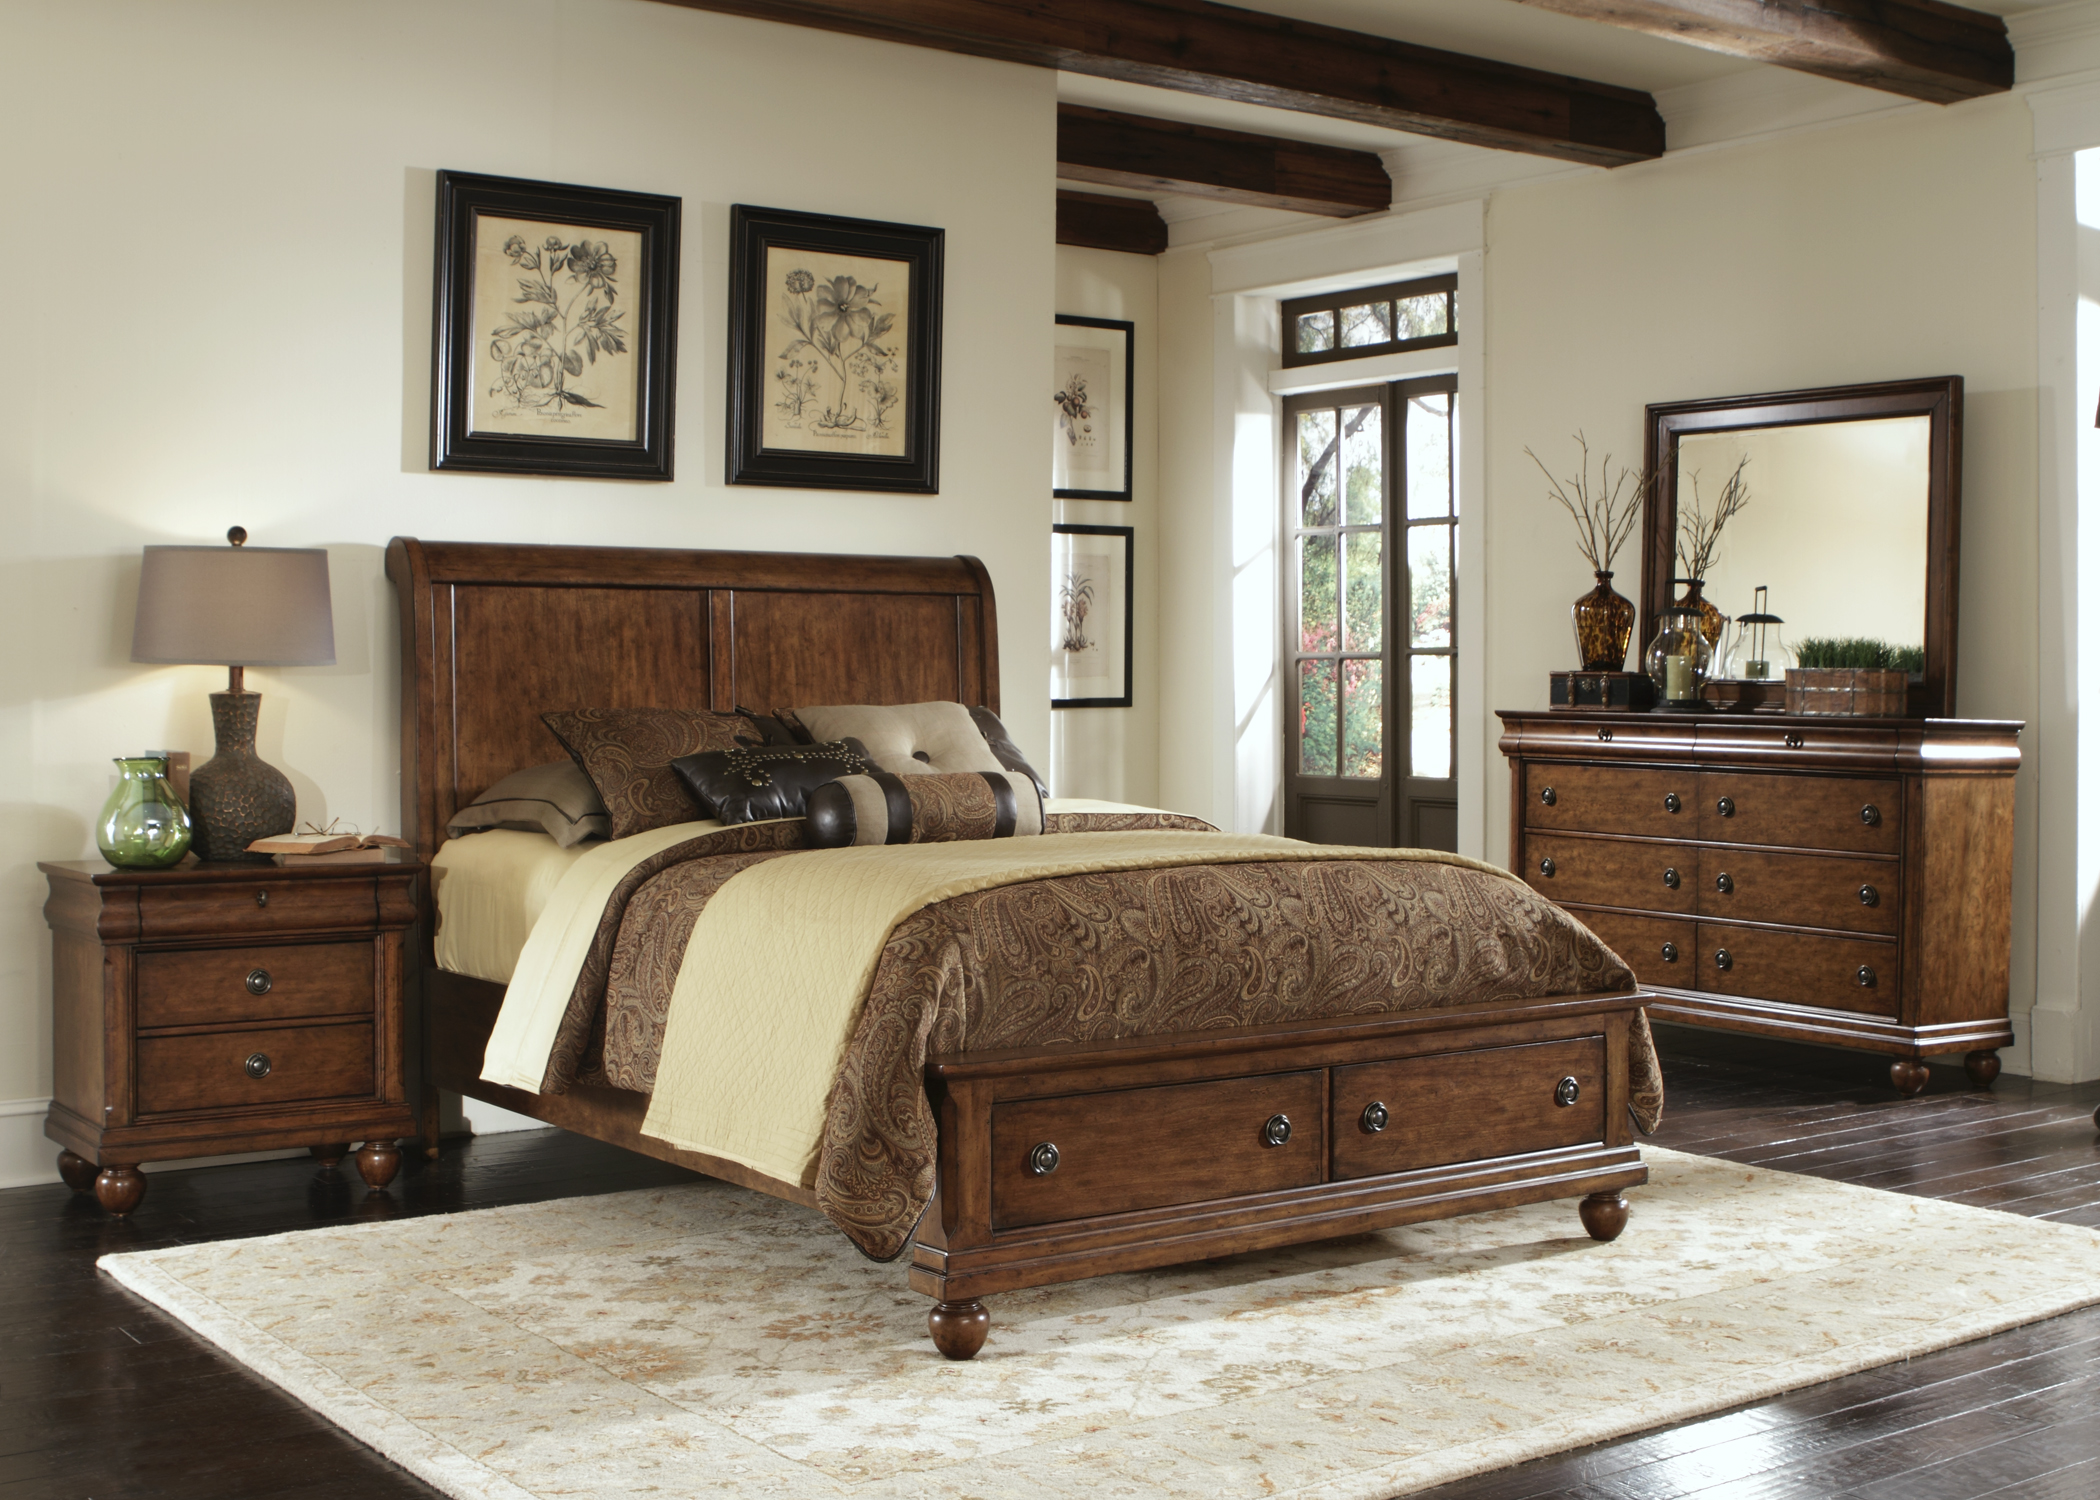 Liberty Surprising Traditions Furniture Bedroom Sets (13)++ Ideas